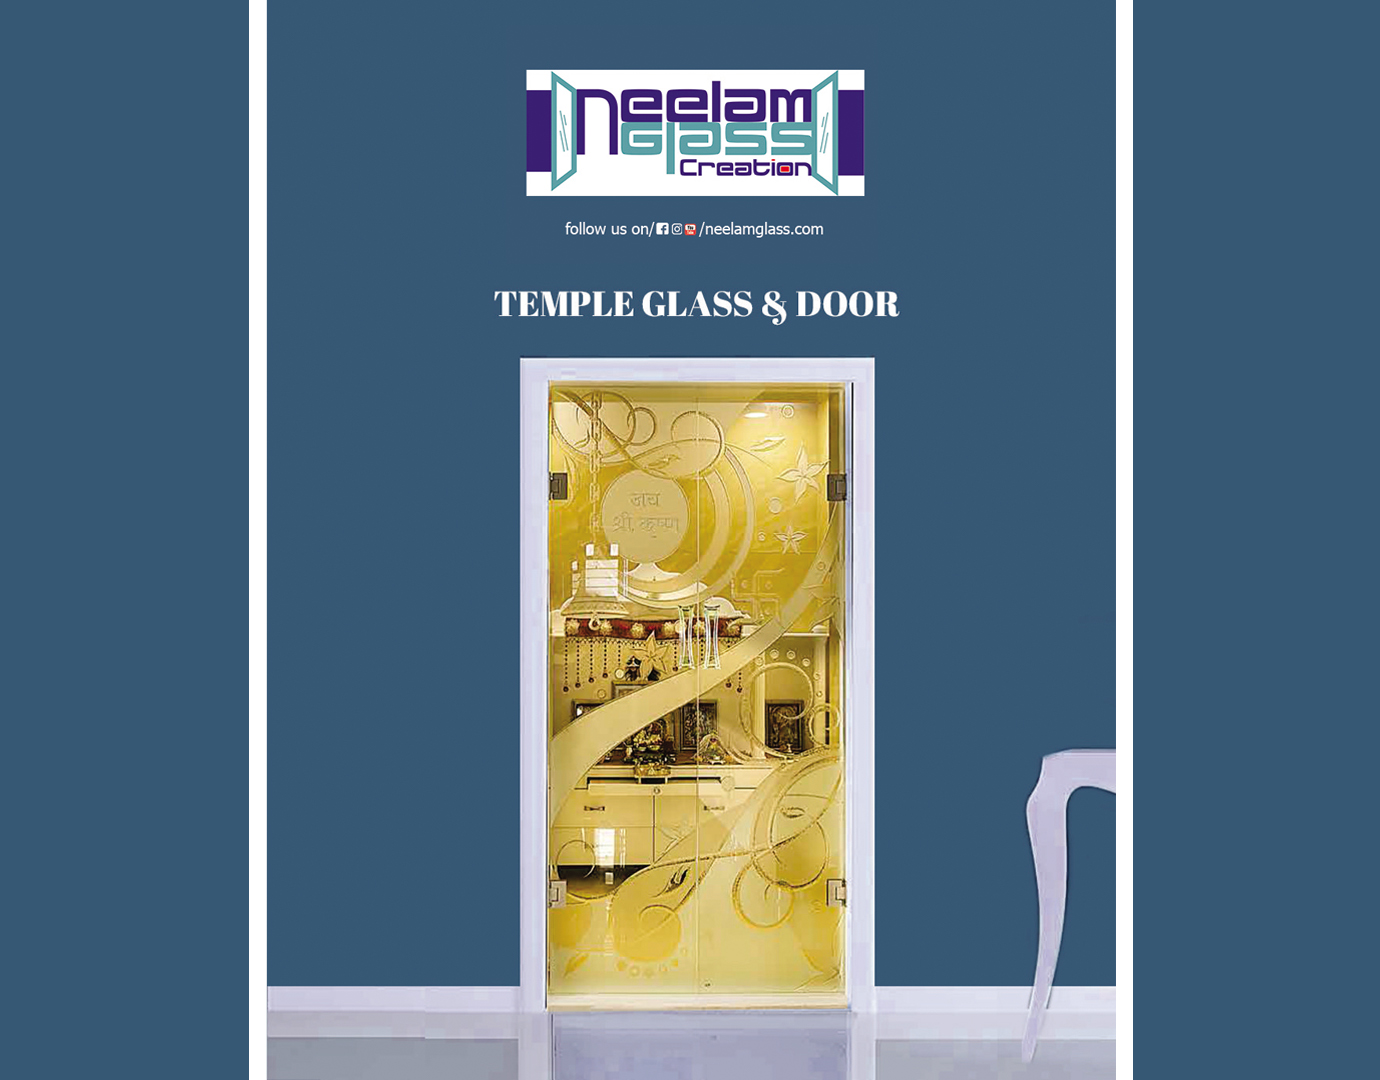 11e2af8f4474 Temple Glass Doors | Glass Products |Neelam Glass Creation